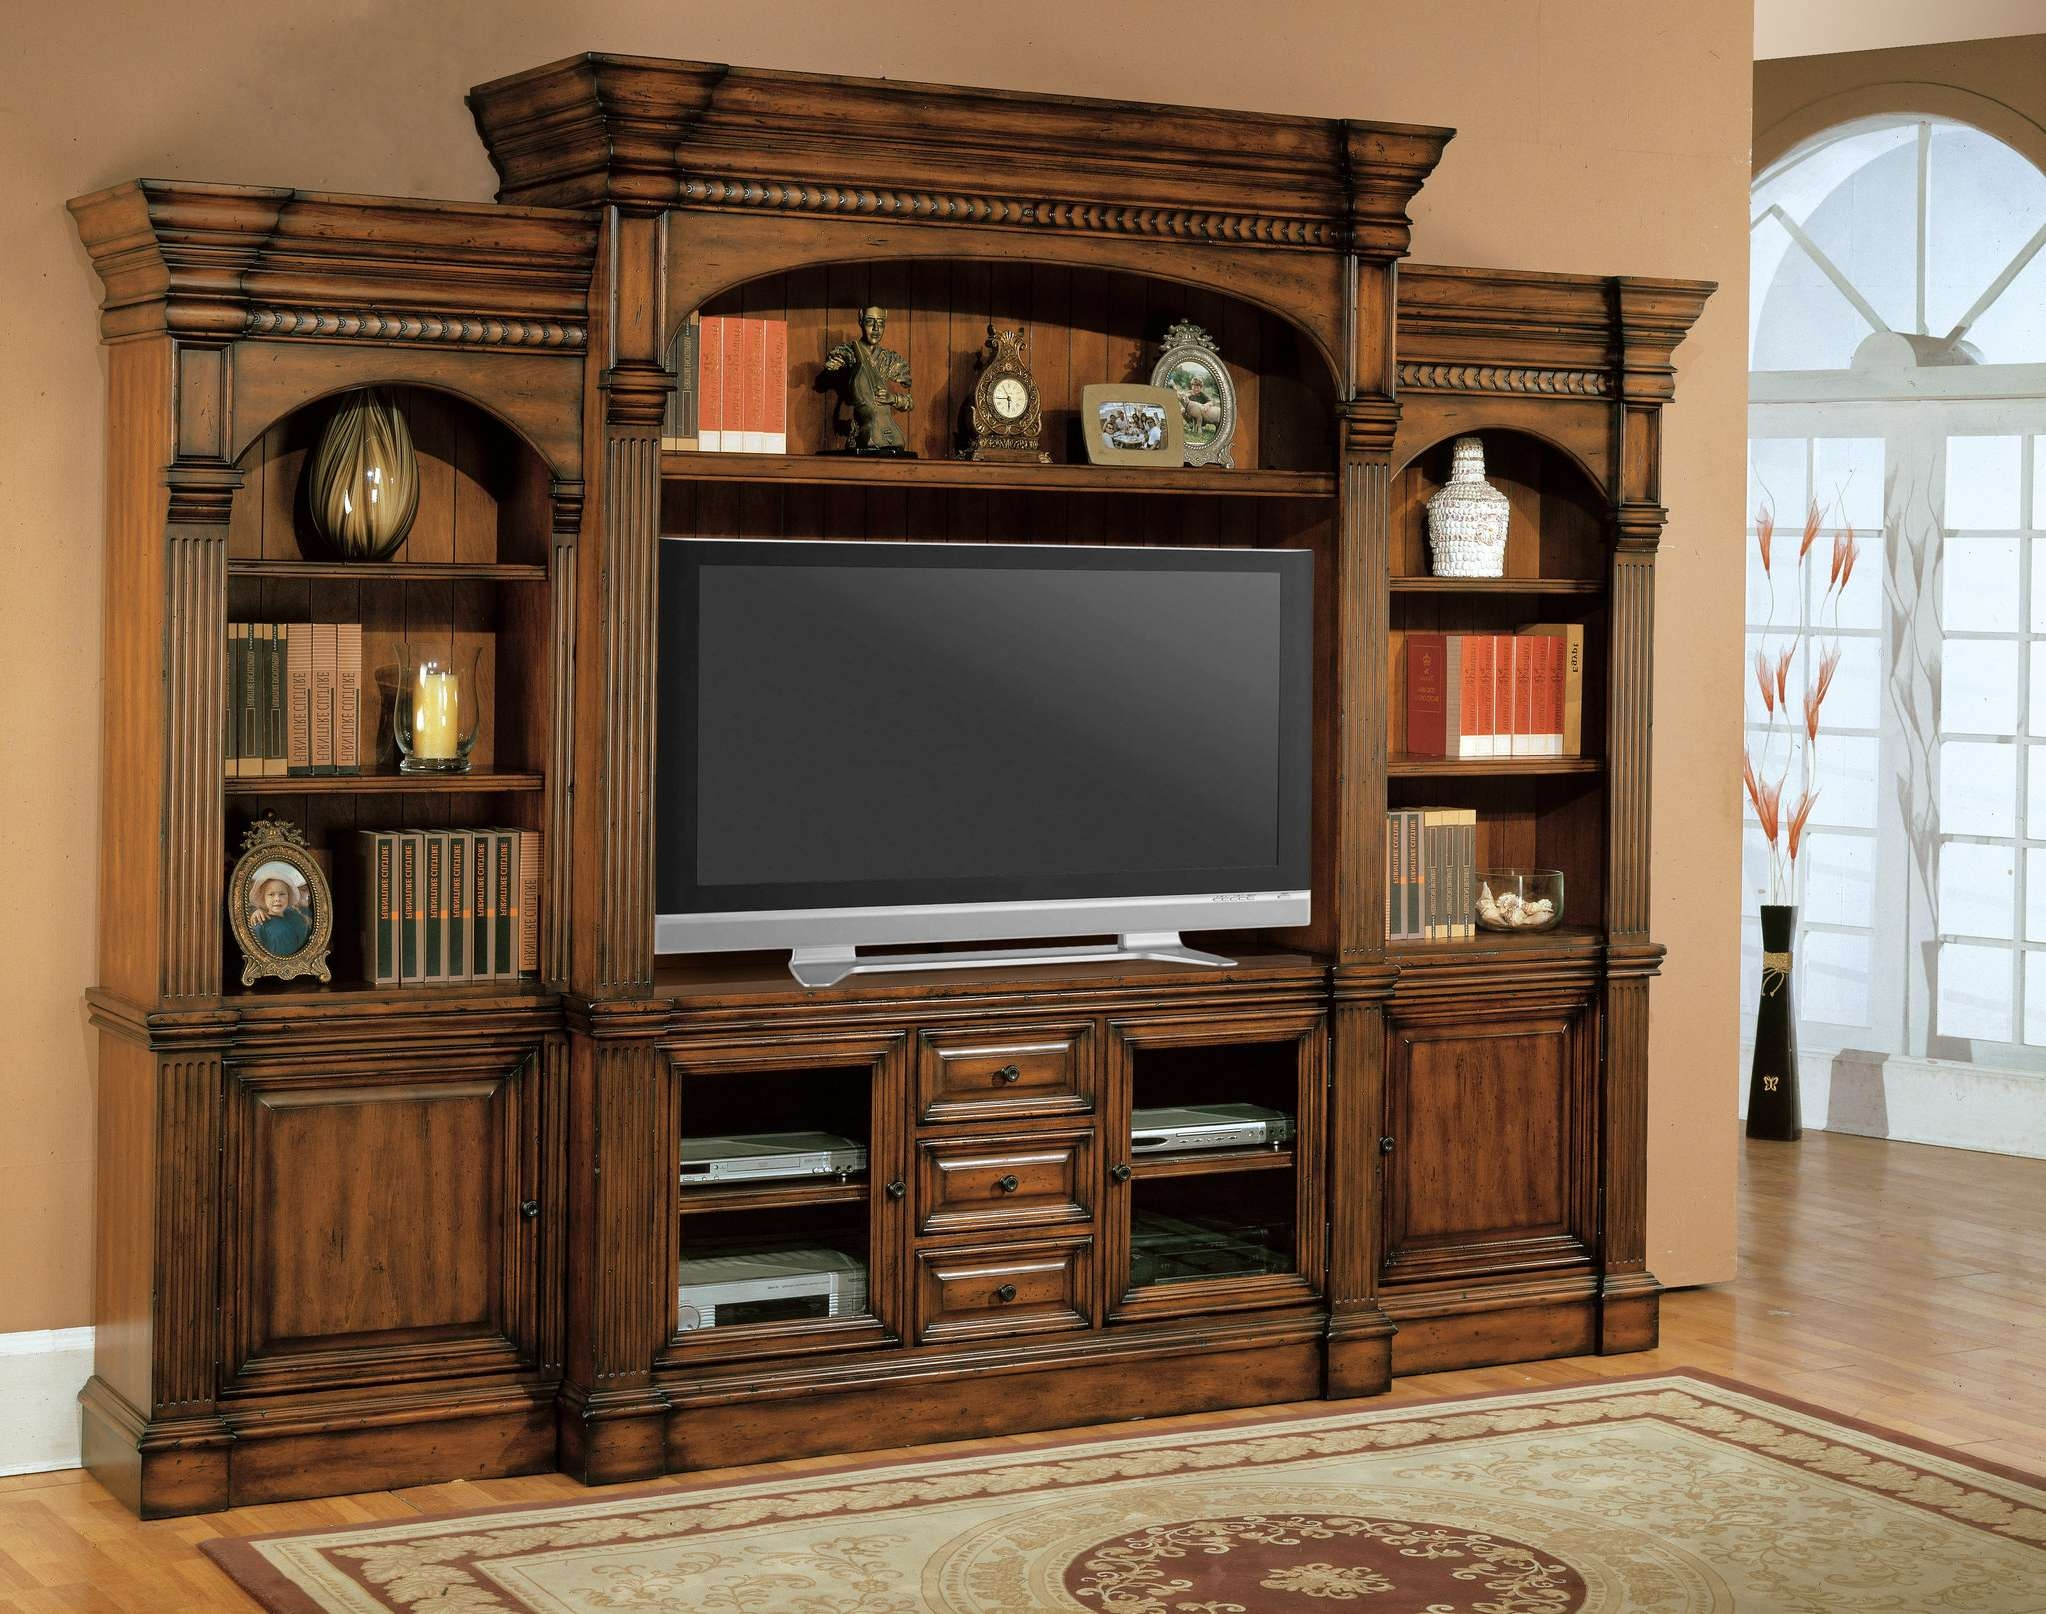 Valuable Idea Flat Screen Tv Wall Cabinet Modest Design Wall With Regard To Wall Mounted Tv Cabinets For Flat Screens With Doors (View 18 of 20)